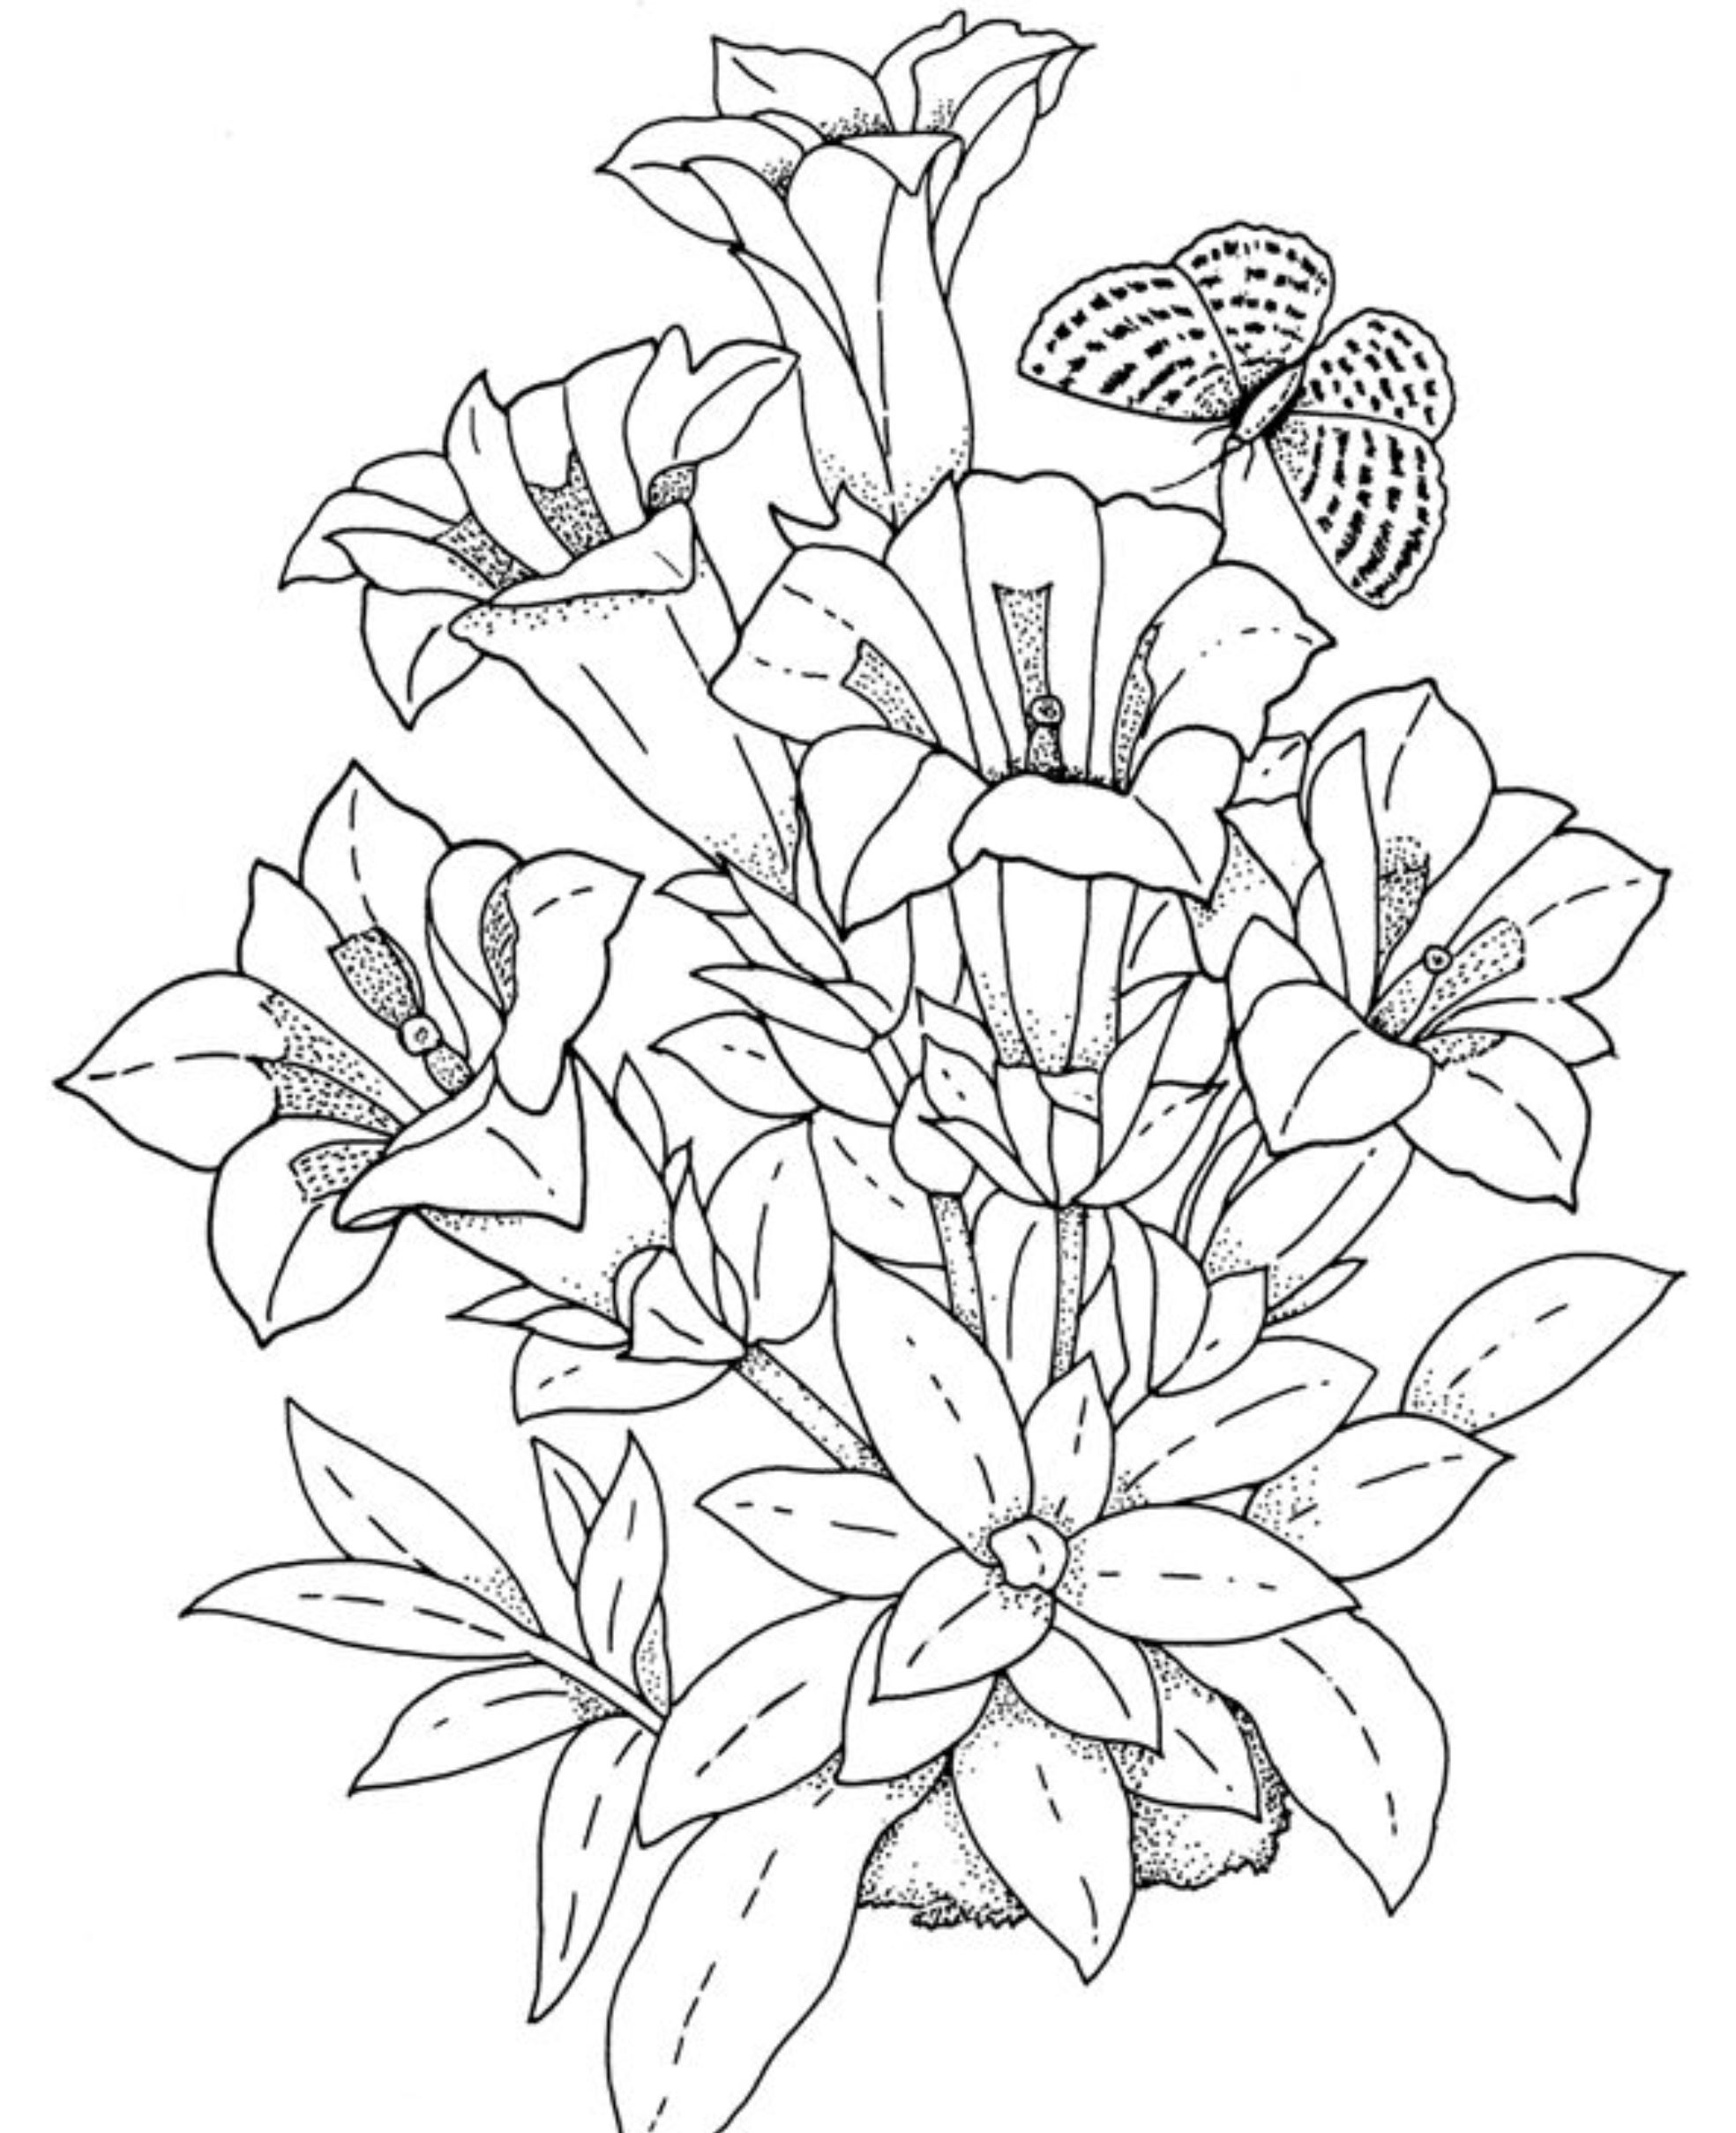 Colouring in pictures of flowers - Download And Print Realistic Flowers Coloring Pages